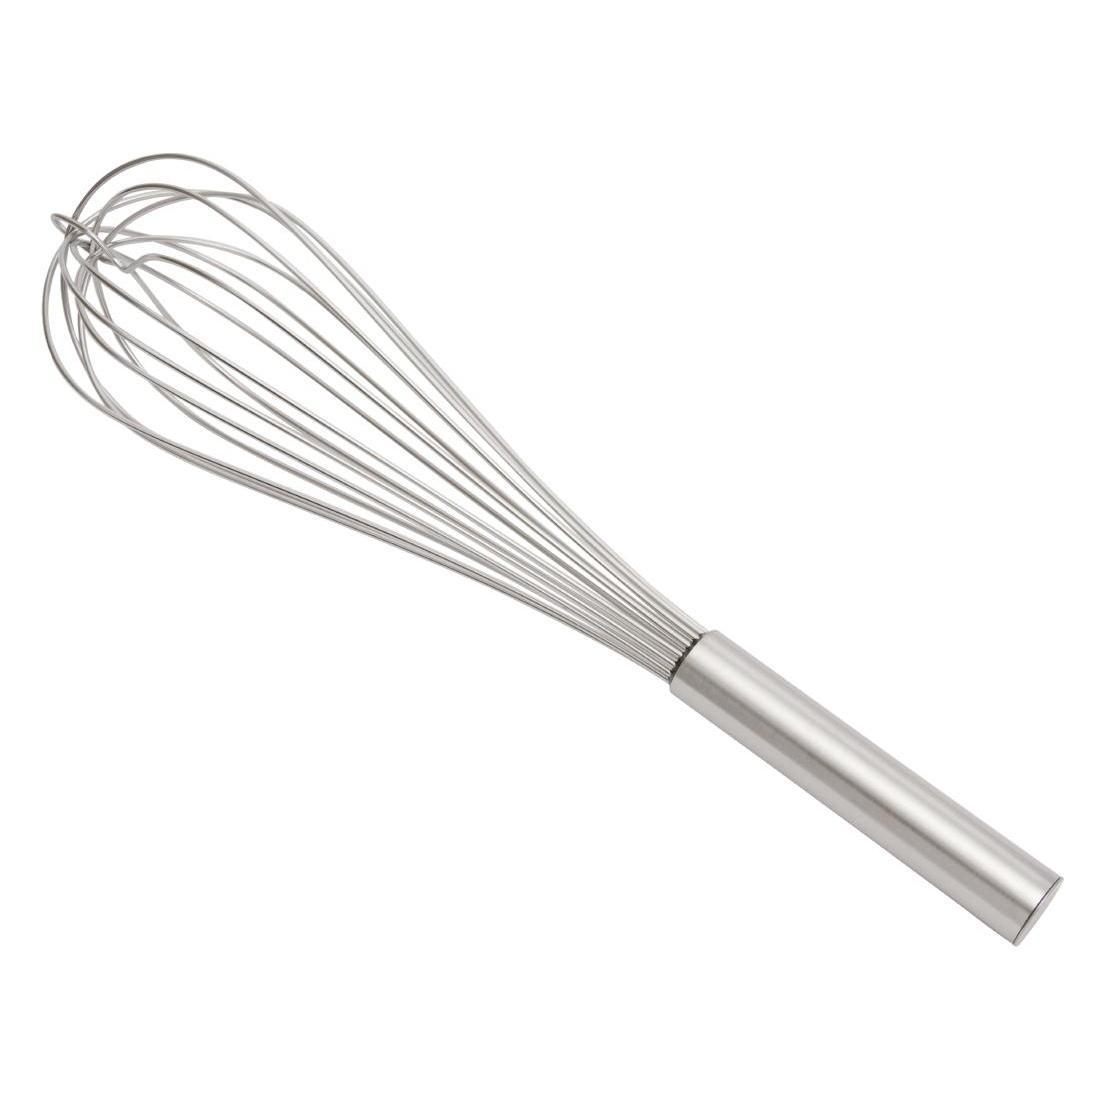 "Vogue Heavy Whisk 16"" - Each - K548"